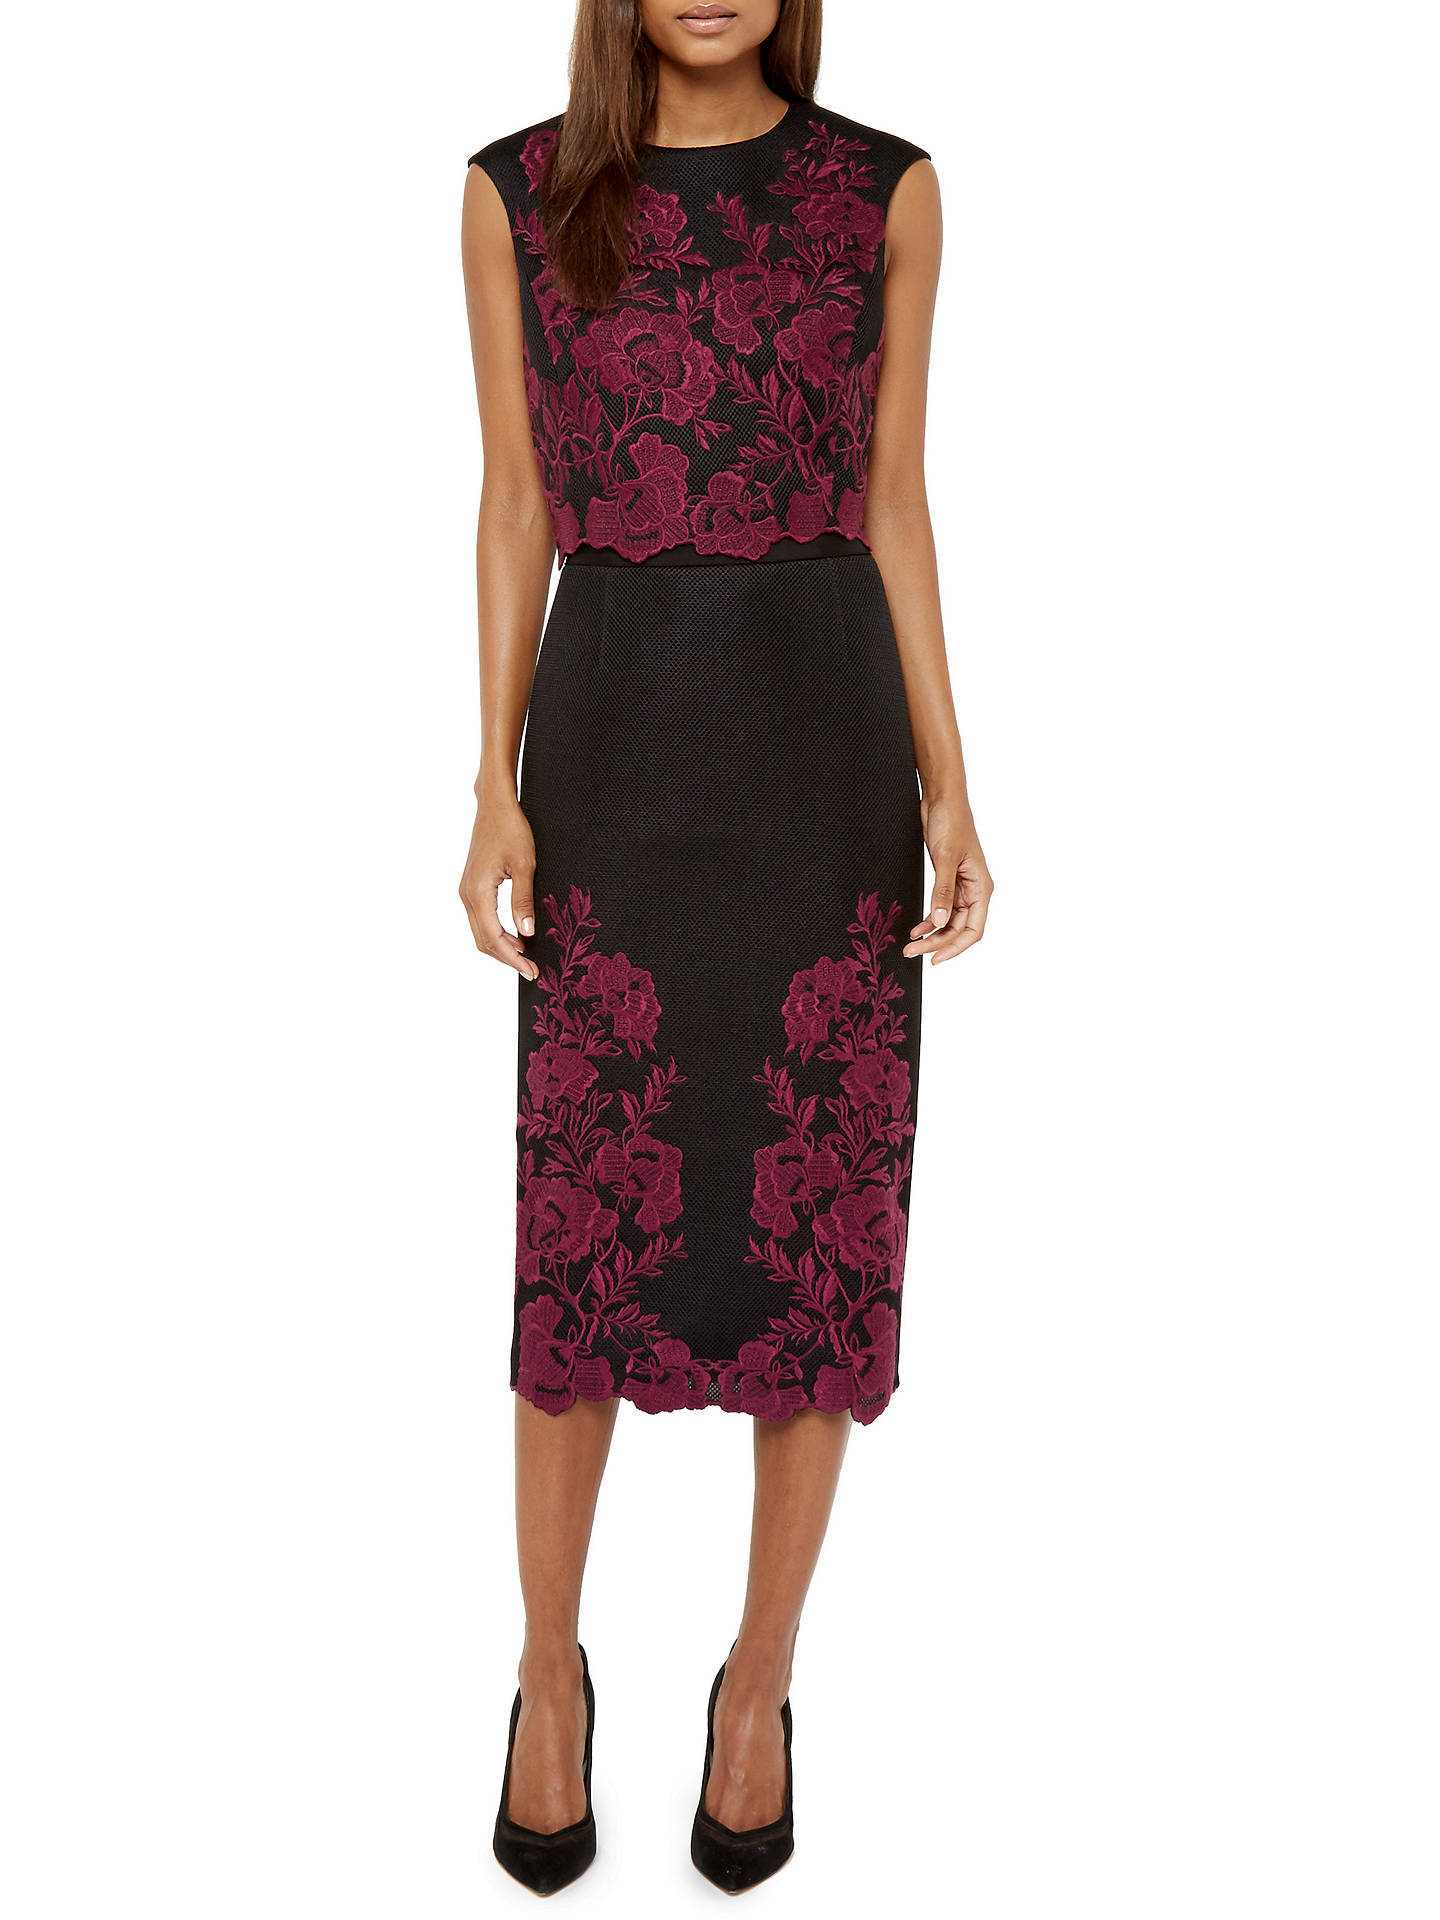 efaf398529aa7 ... Buy Ted Baker Vynus Embroidered Mesh Lace Top